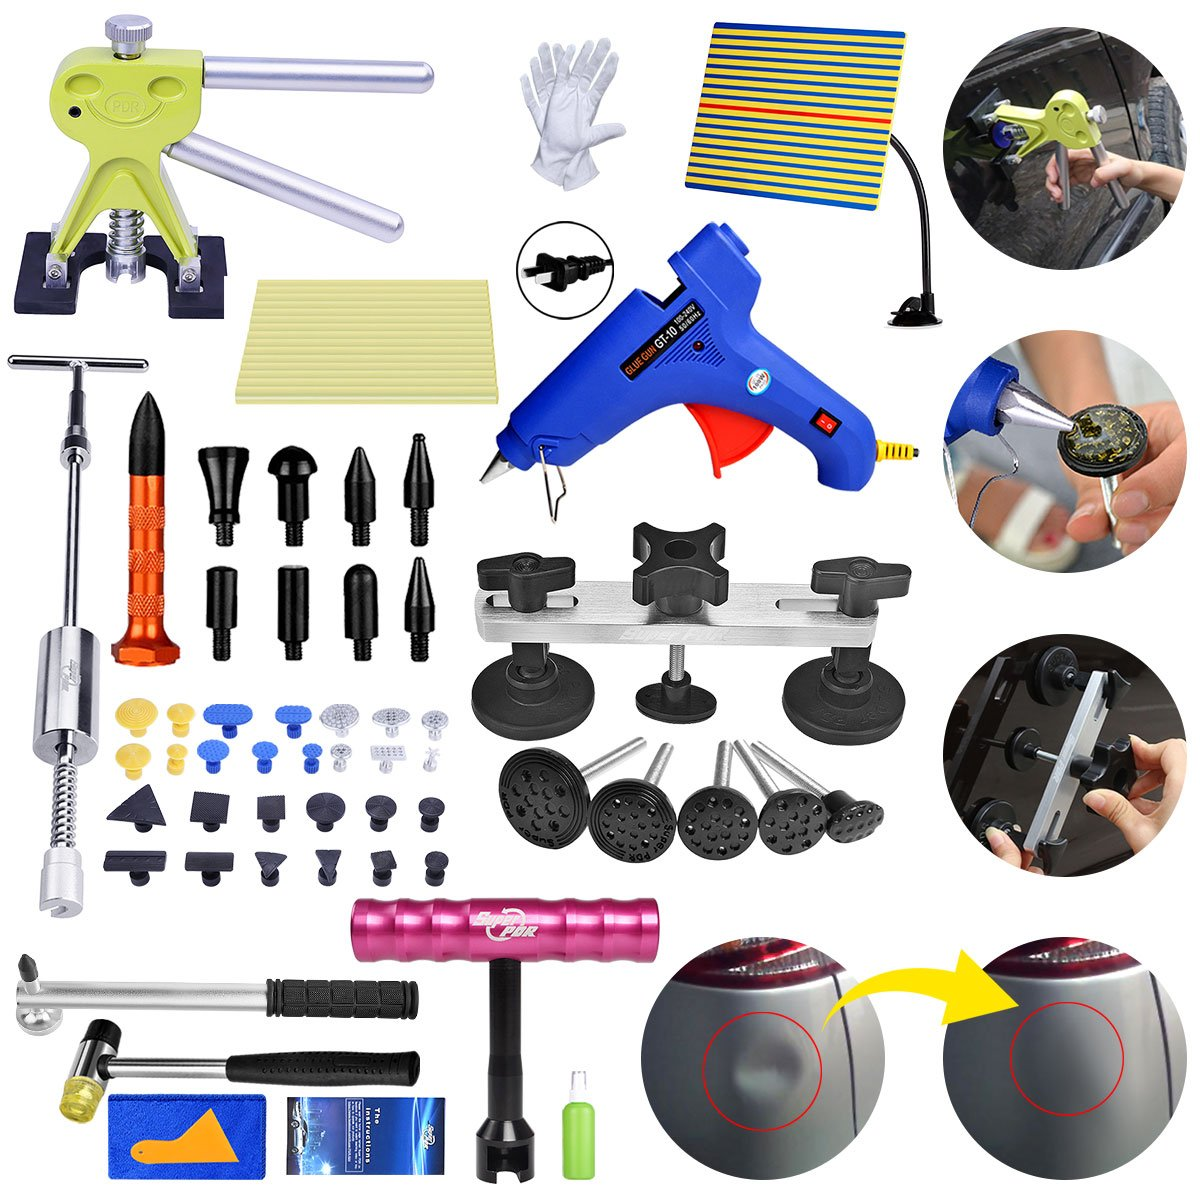 Fly5D 56pcs Paintless Car Dent Removal Tools Kit Dent Damage Repair Tool Set with Light Board Dent Lifter Puller Pull Out a Dent